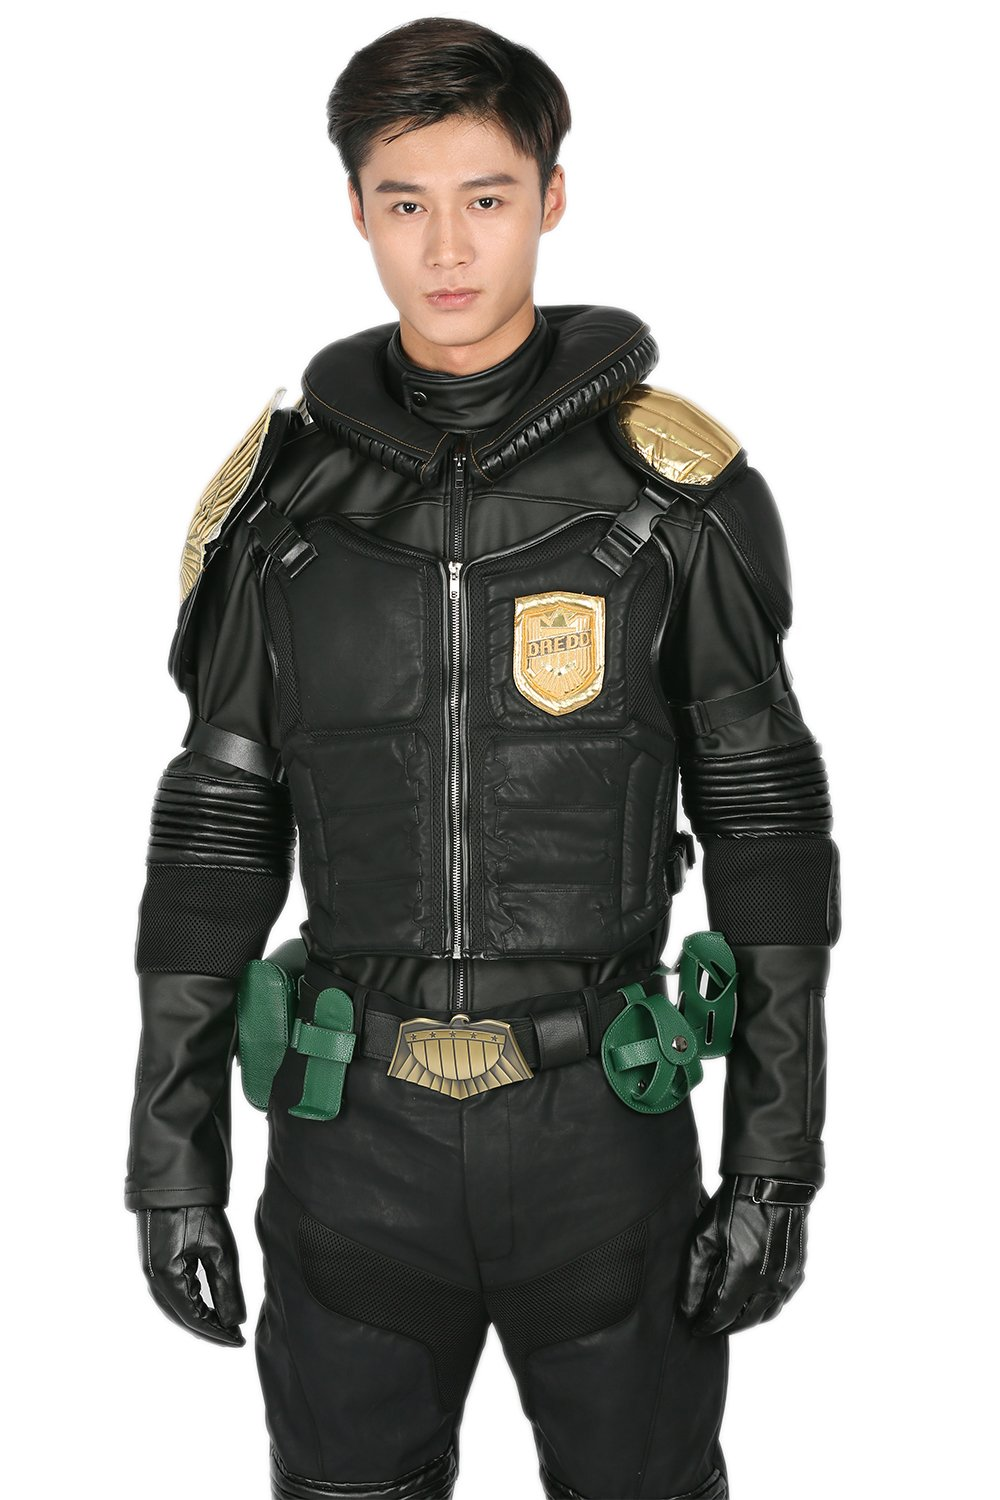 xcoser Judge Dredd Costume Deluxe PU Belt Jacket Pants Adult Halloween Cosplay Outfit L by xcoser